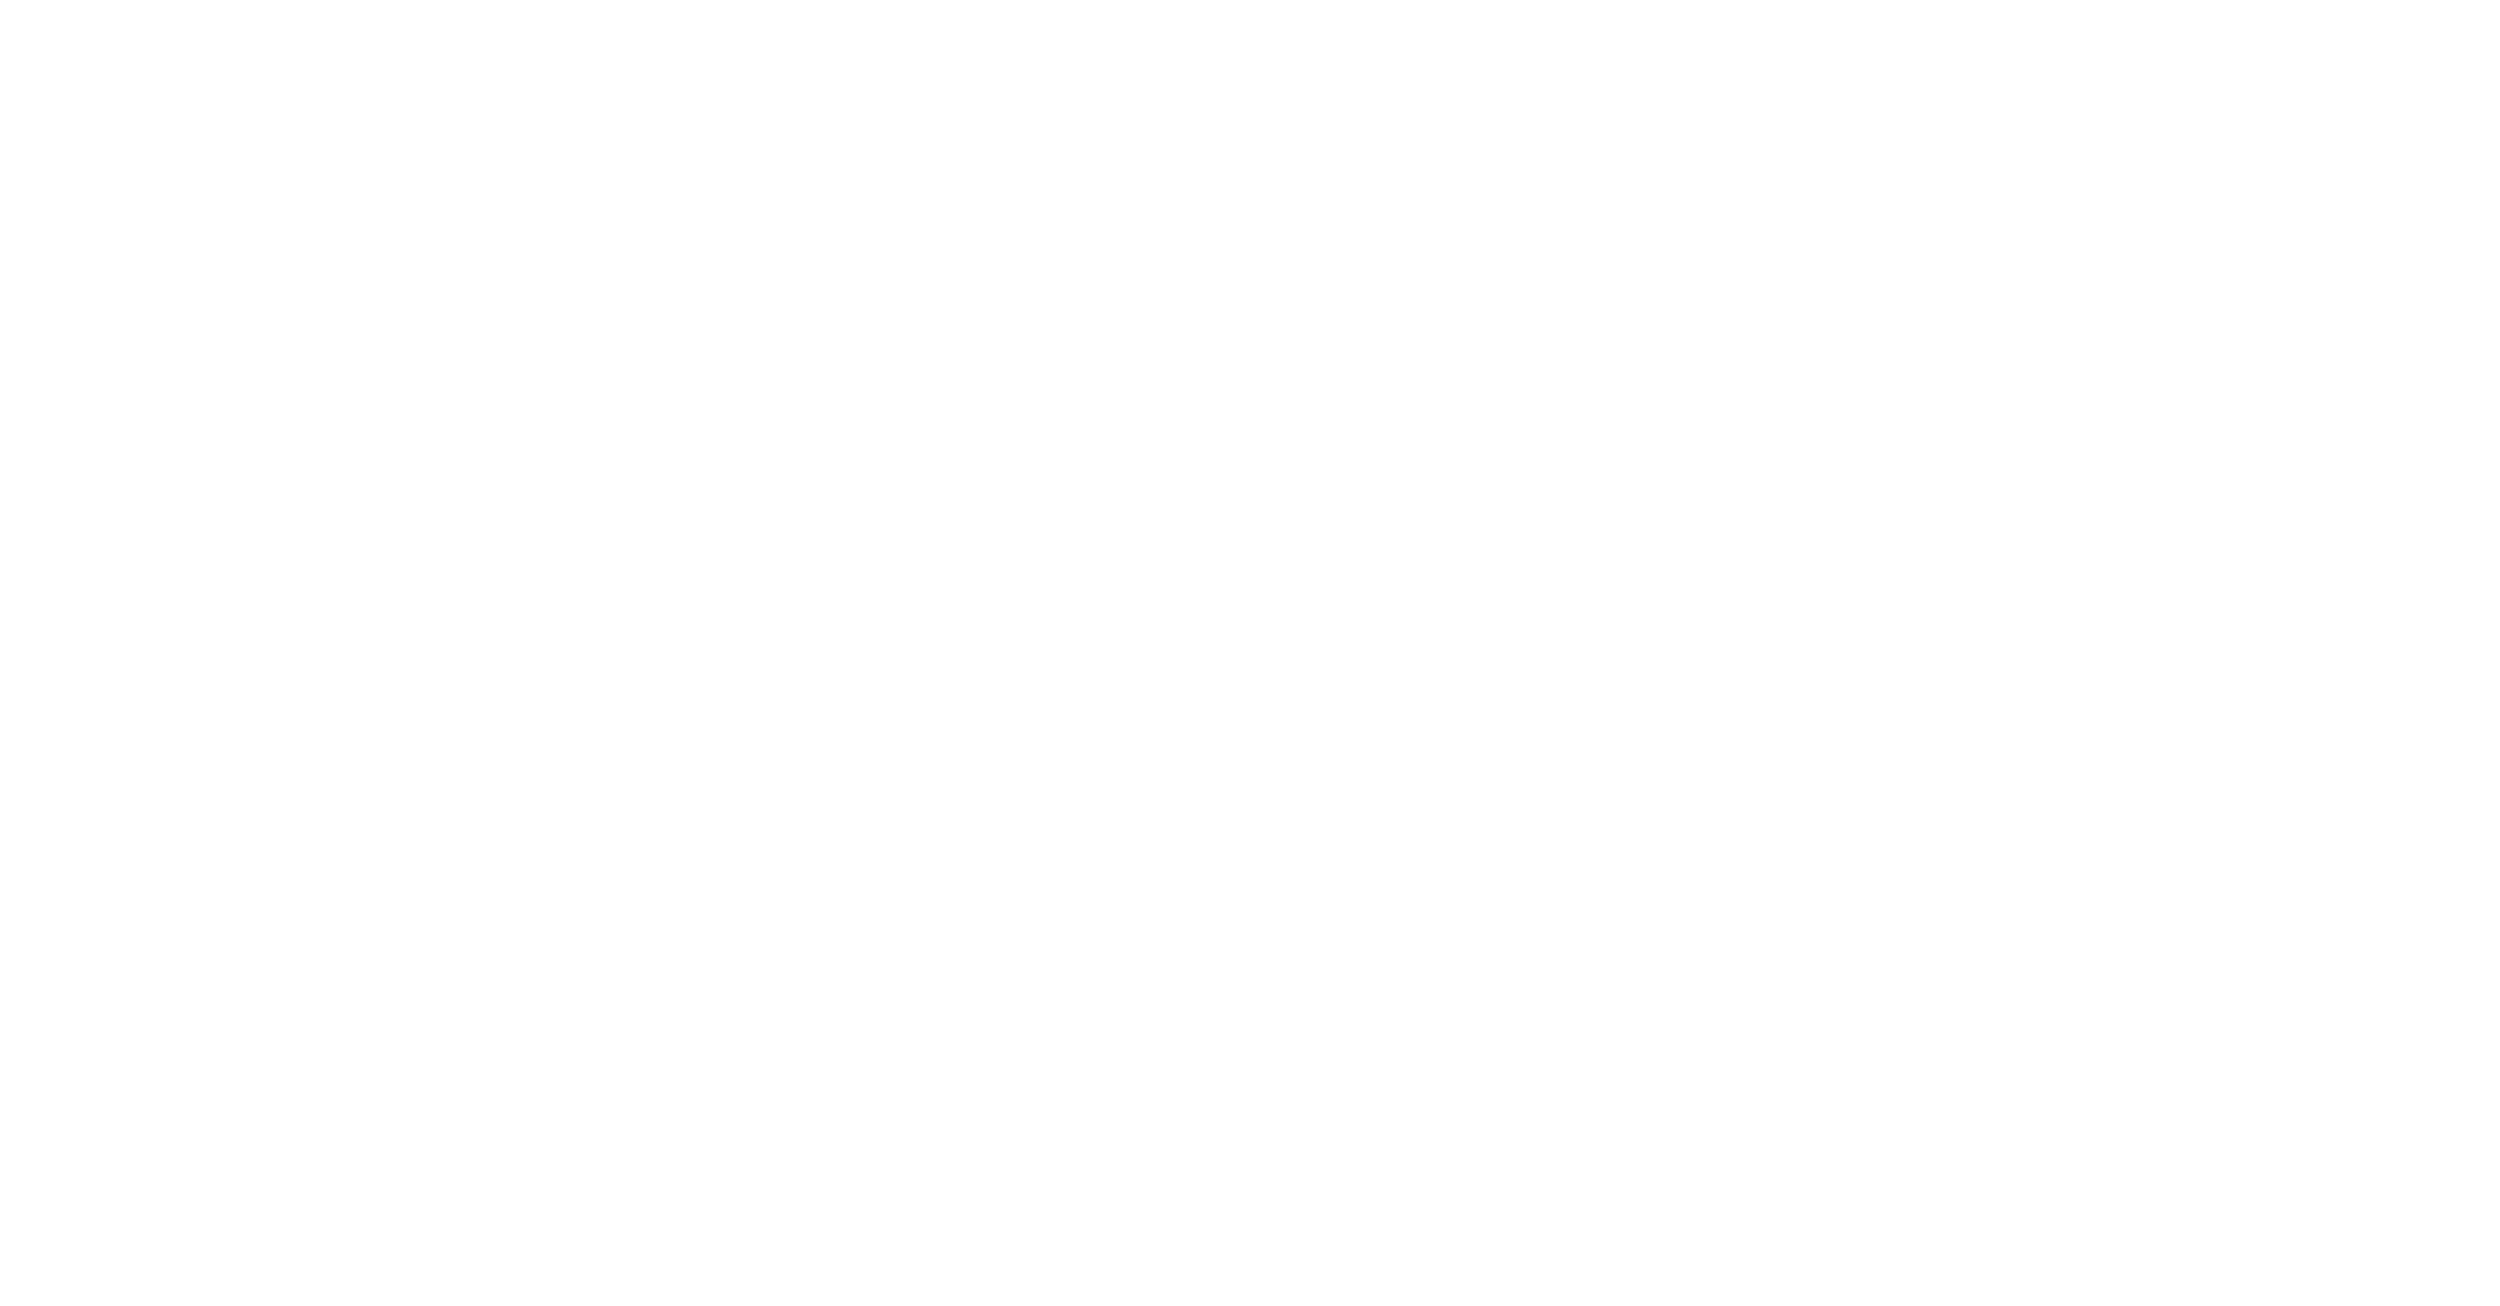 LOGO_The_Self_Made_SUmmit_Hashtag_Workmode_Event.png